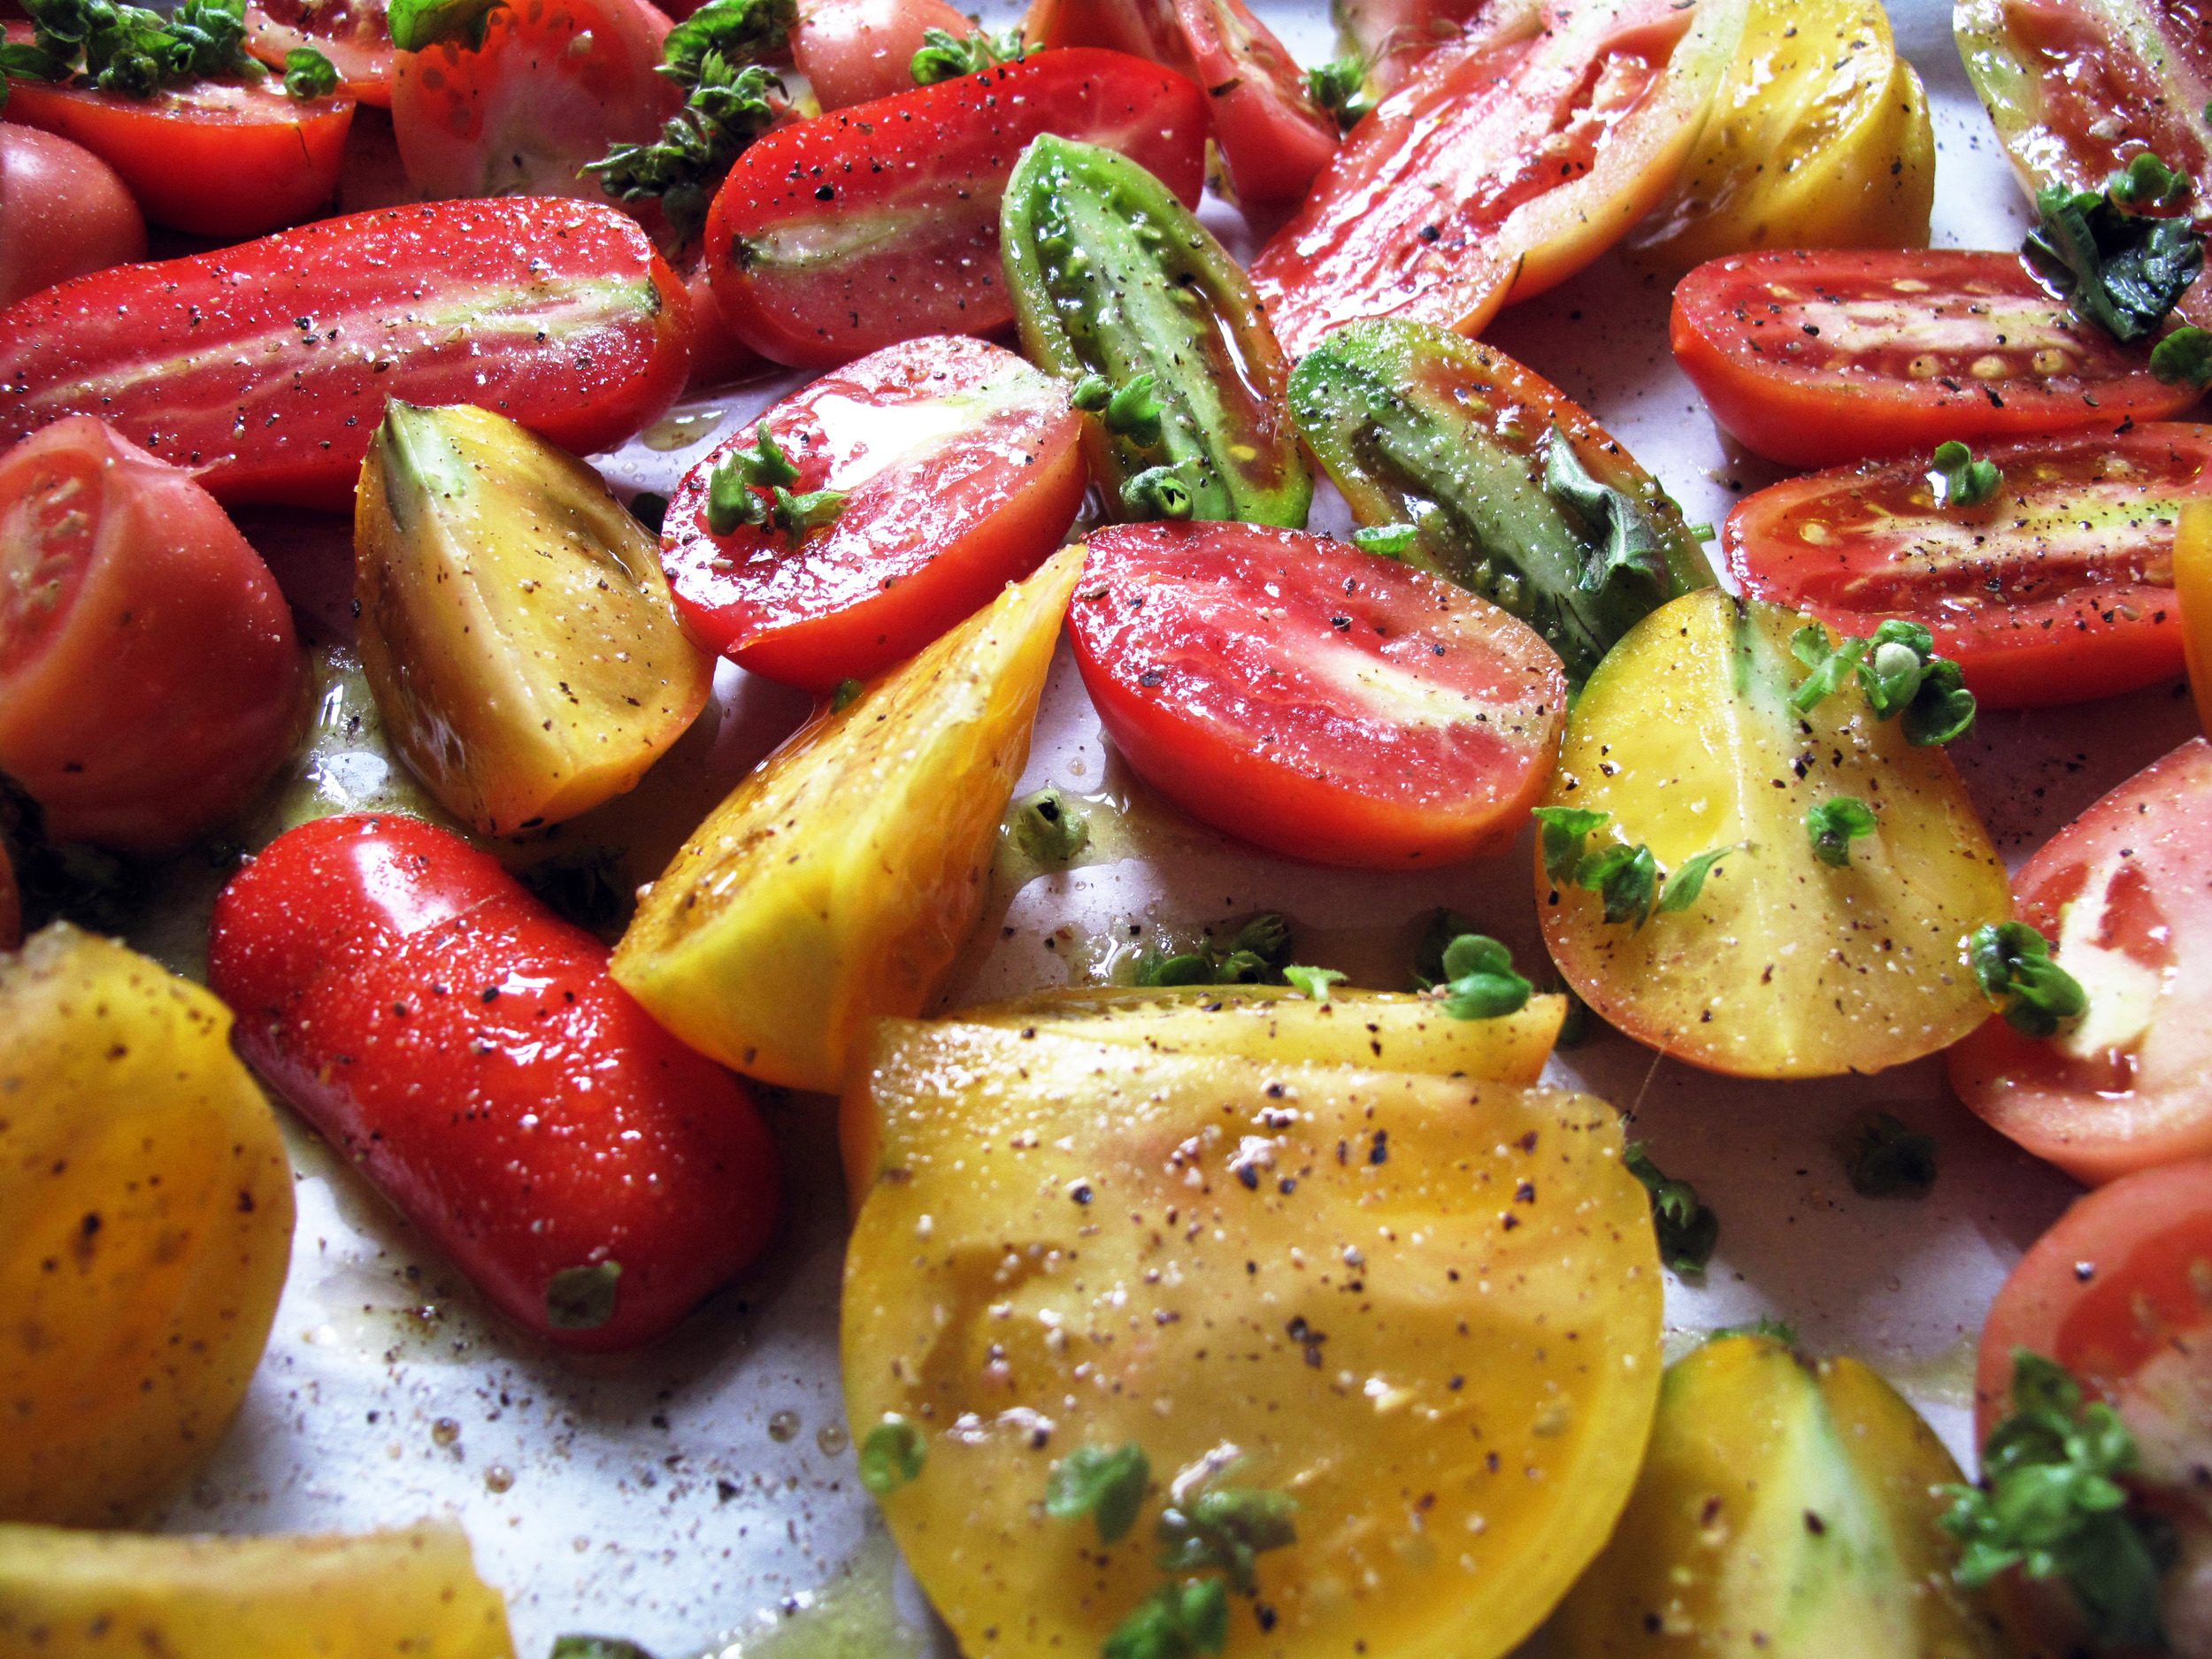 Heirloom tomatoes fresh from my garden are ready for a good roast in a hot oven.